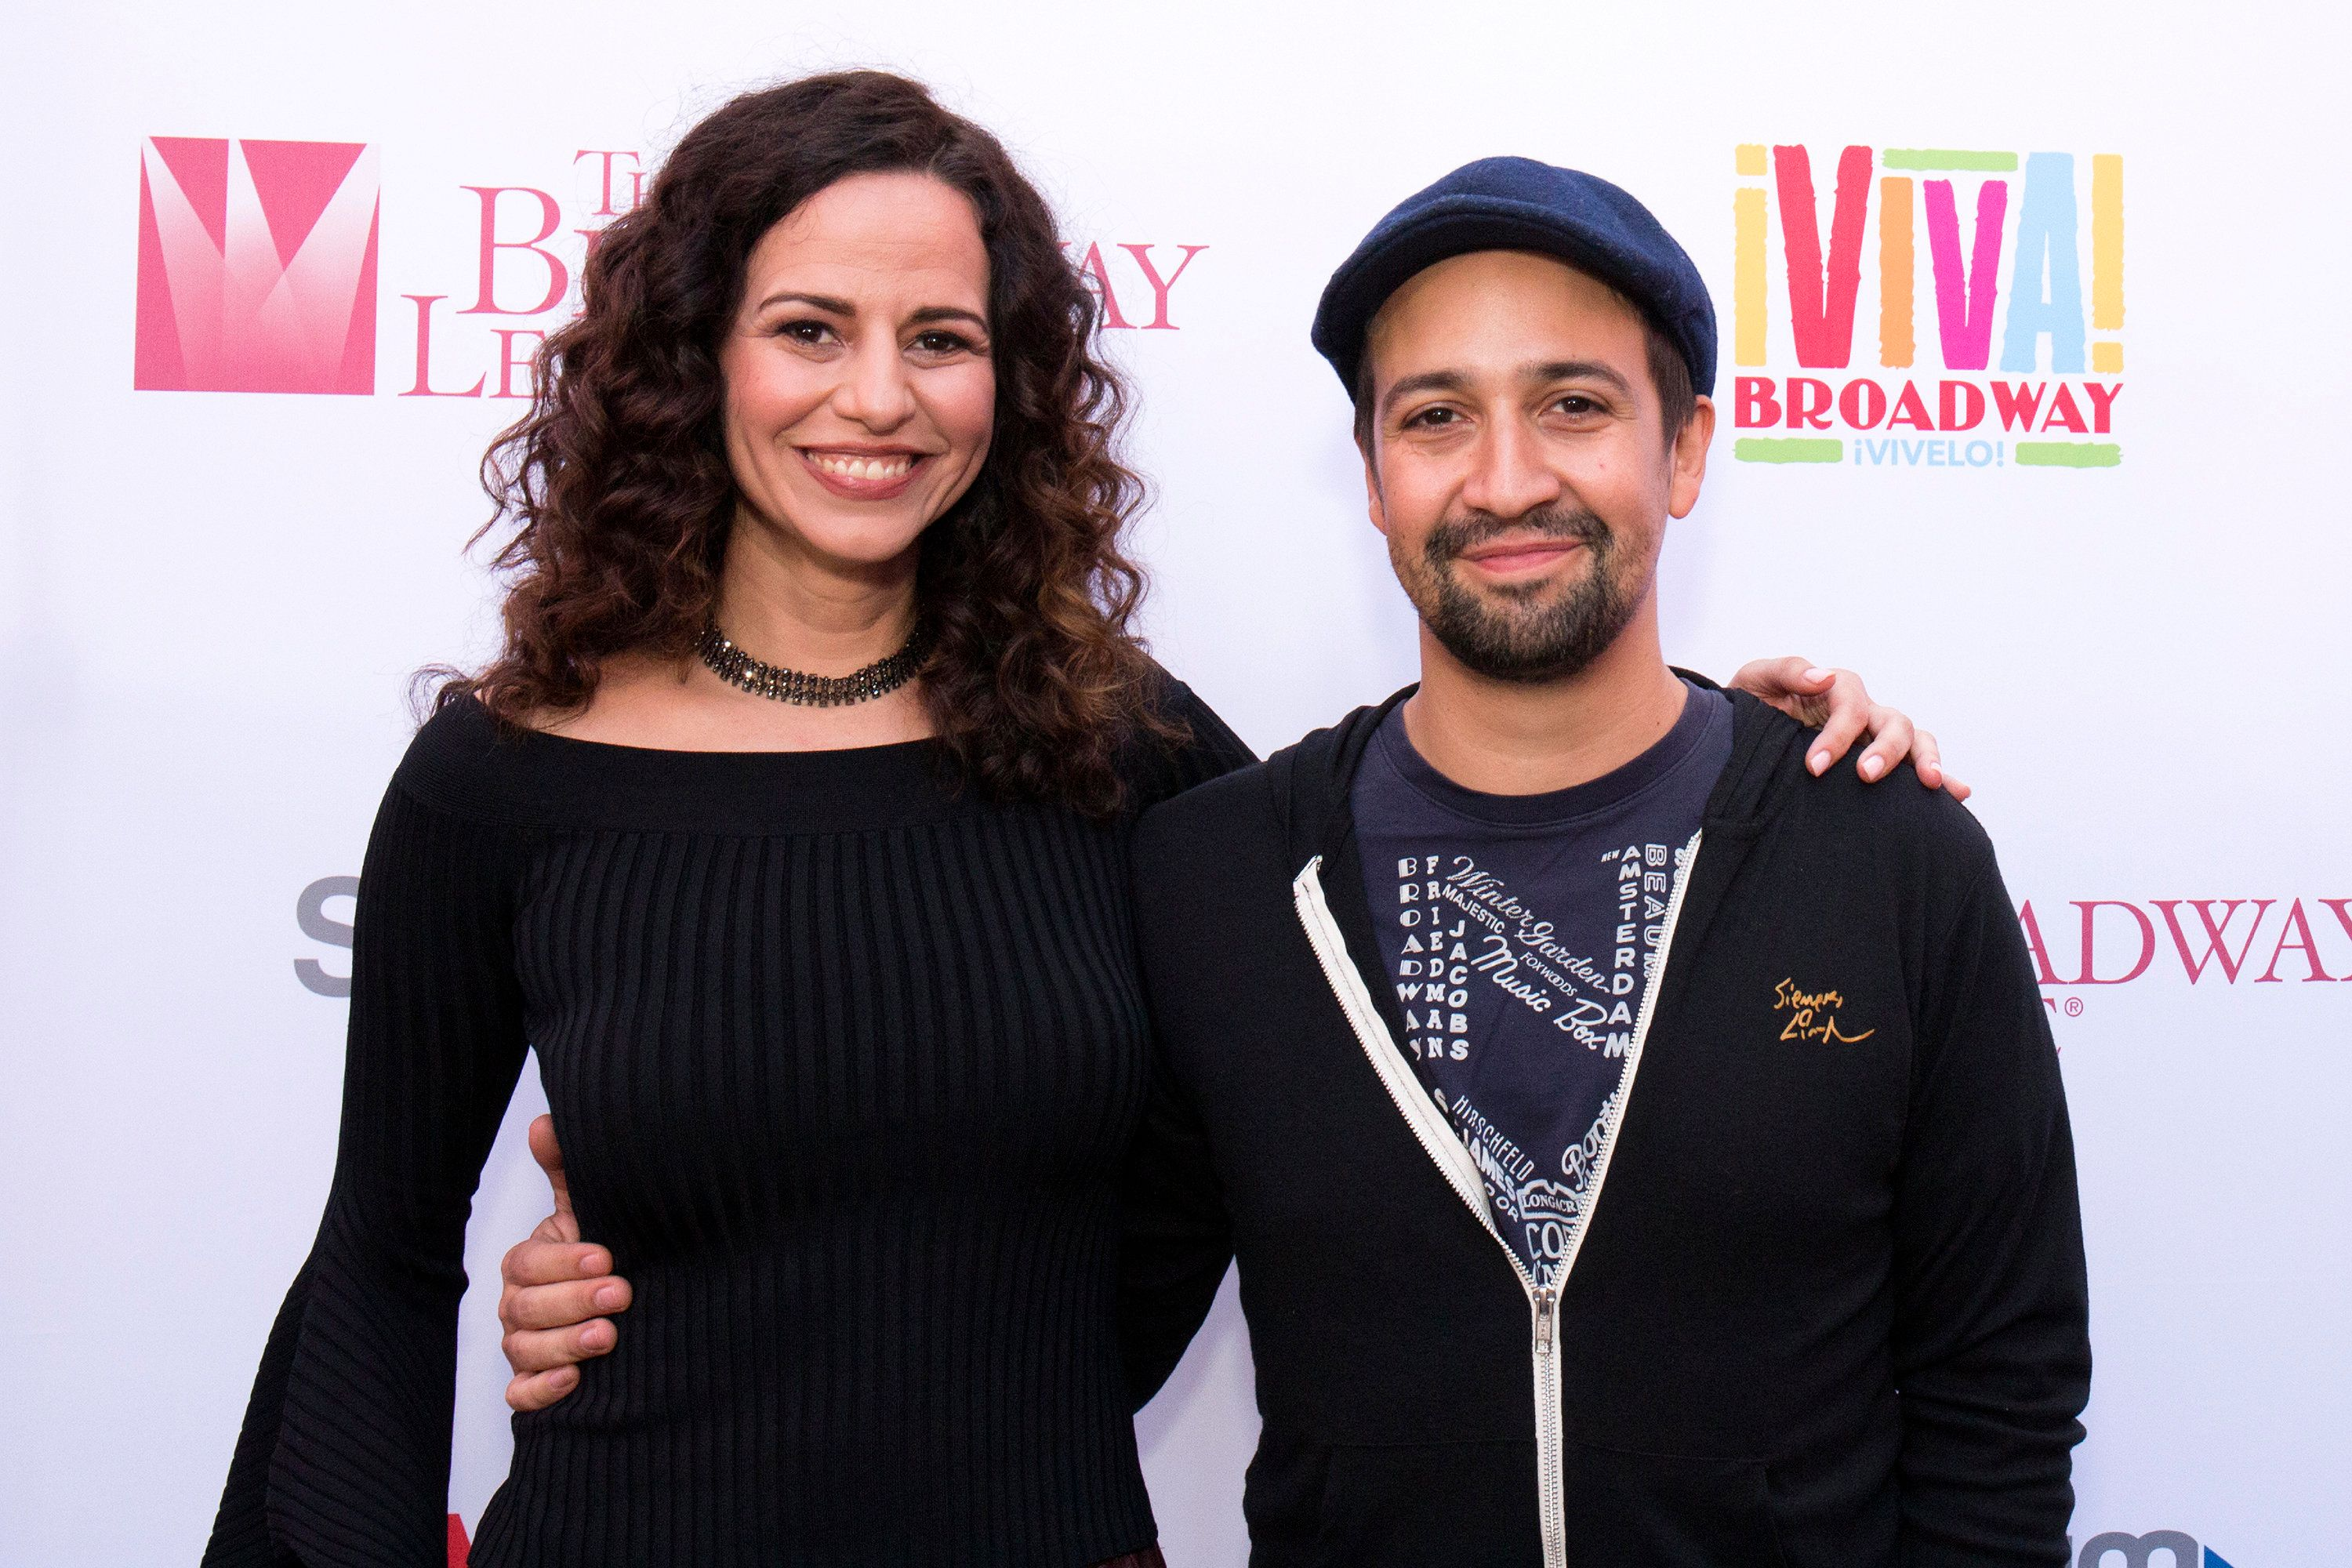 NEW YORK, NY - SEPTEMBER 15:  Mandy Gonzalez and Lin-Manuel Miranda attend Viva Broadway Special Event at Duffy Square on September 15, 2017 in New York City.  (Photo by Santiago Felipe/Getty Images)